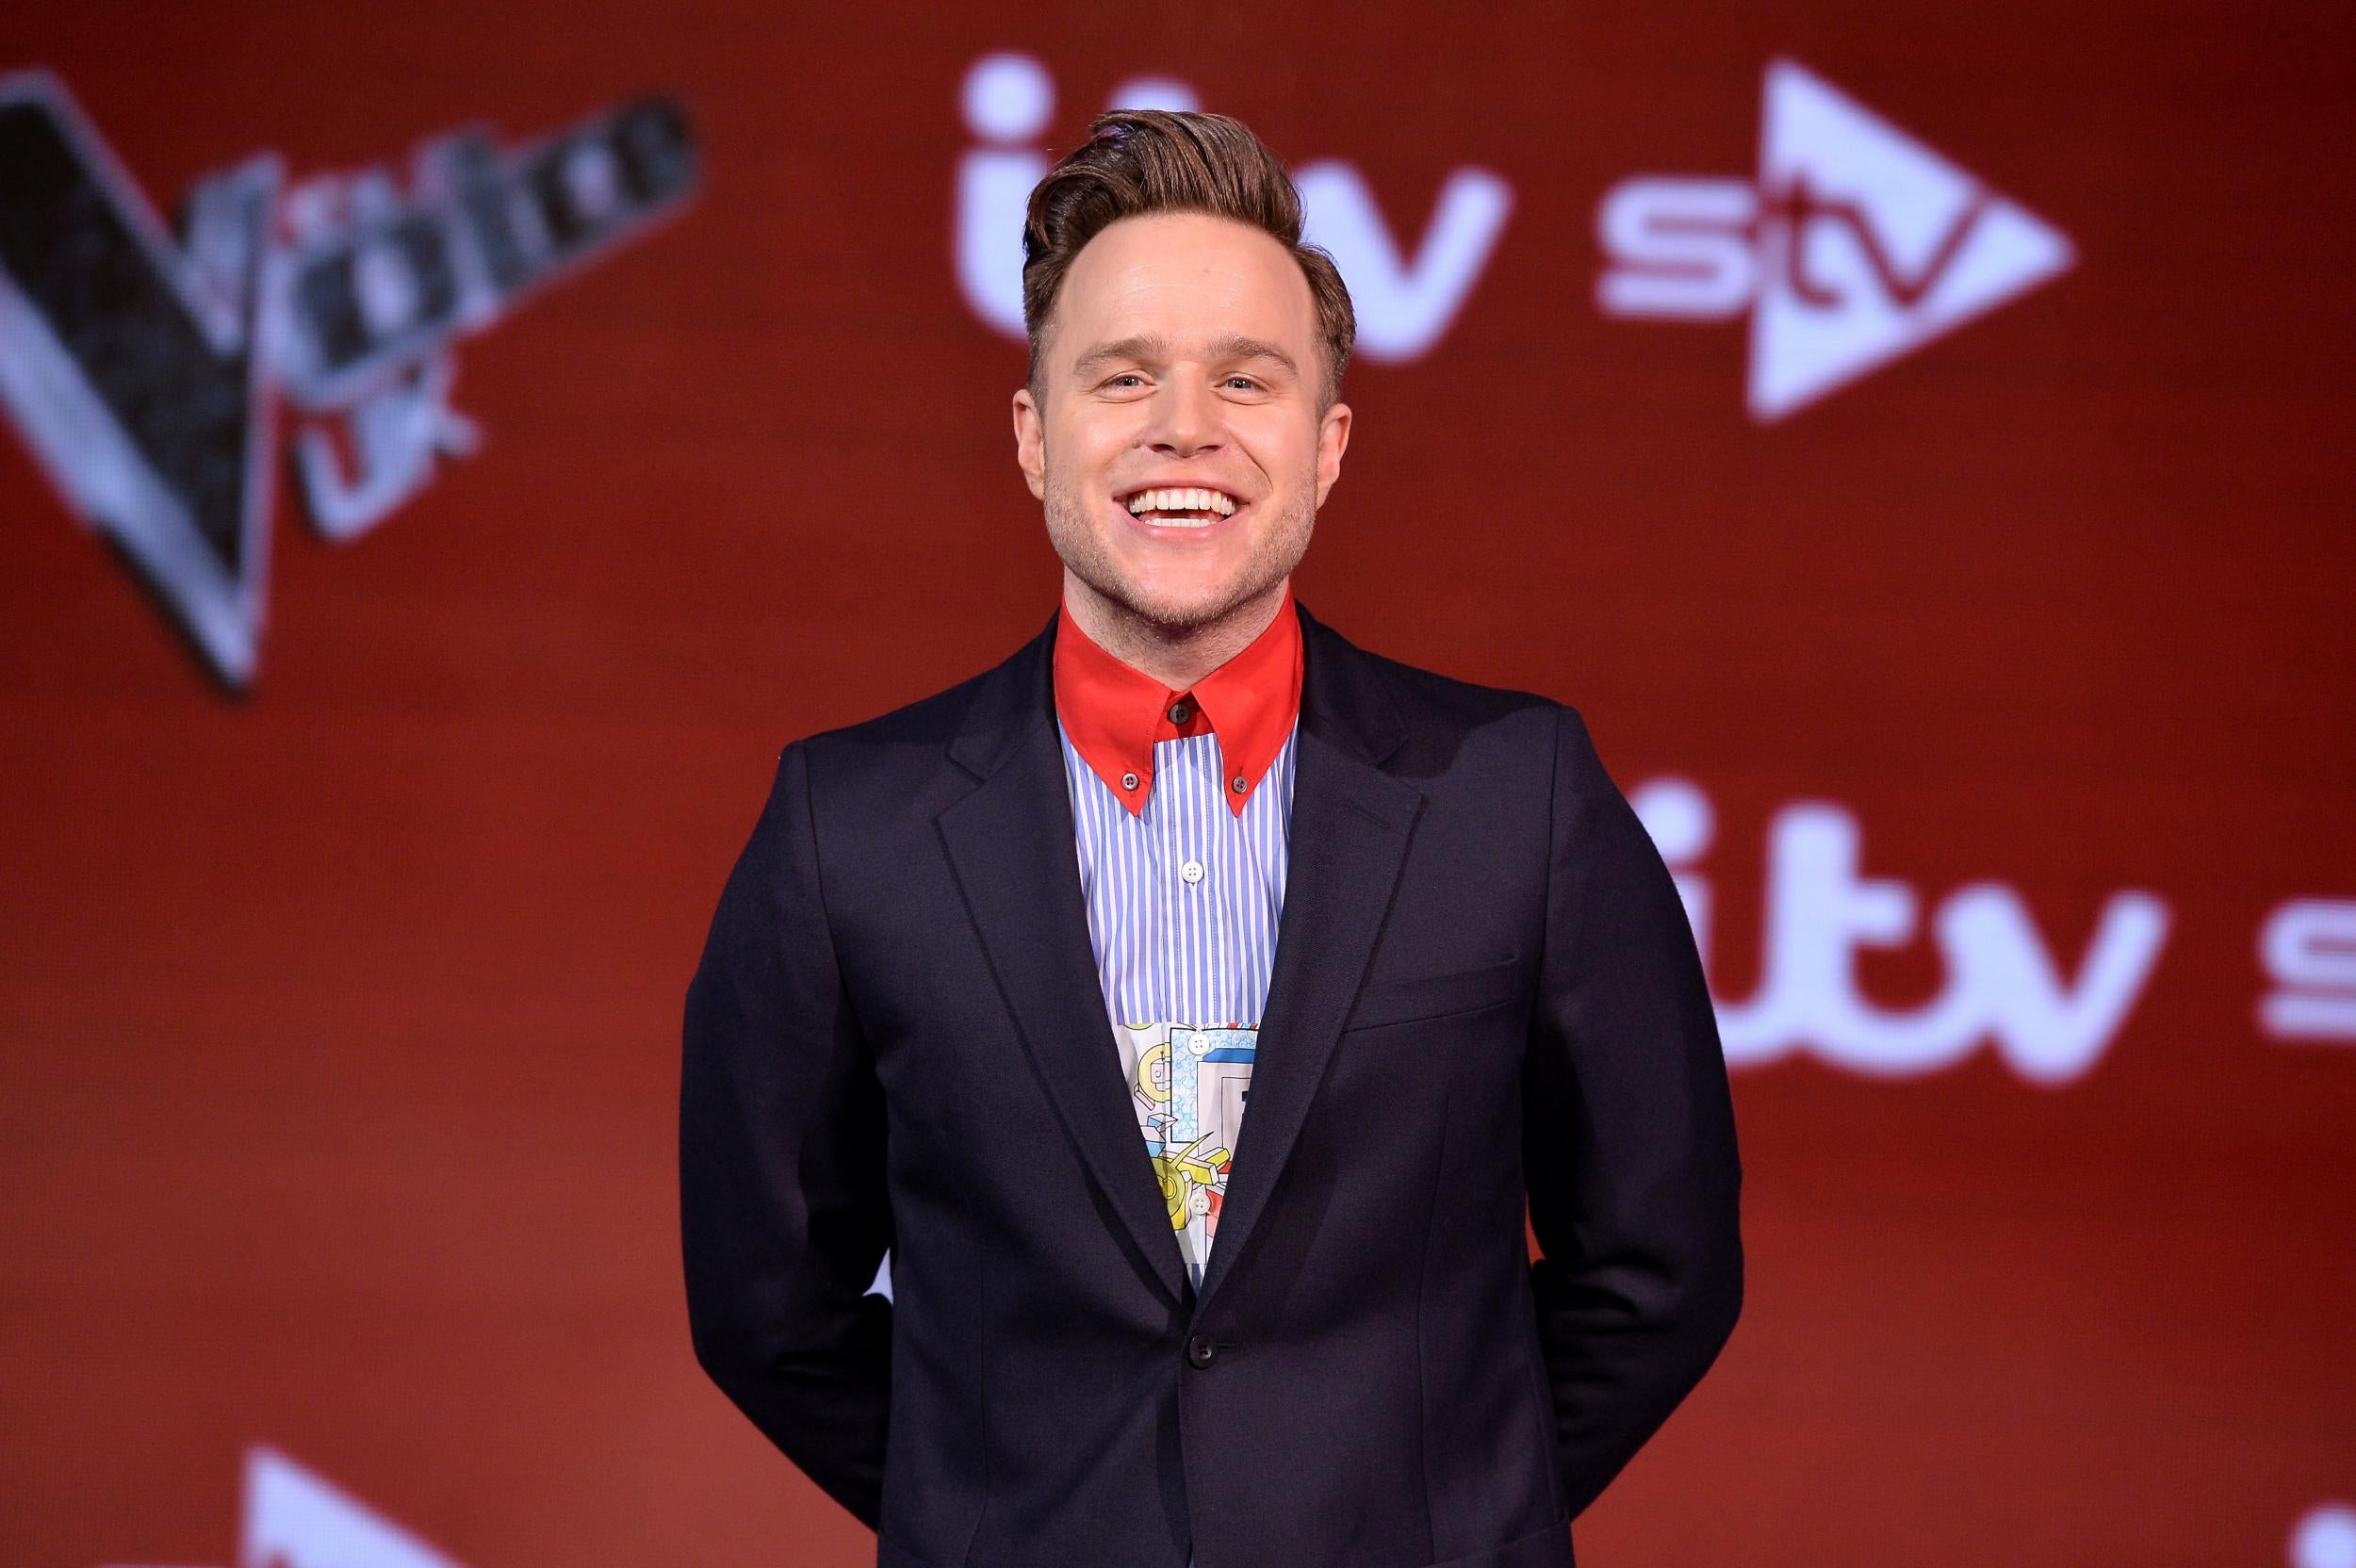 Olly Murs hints at Black Friday terror scare cover-up